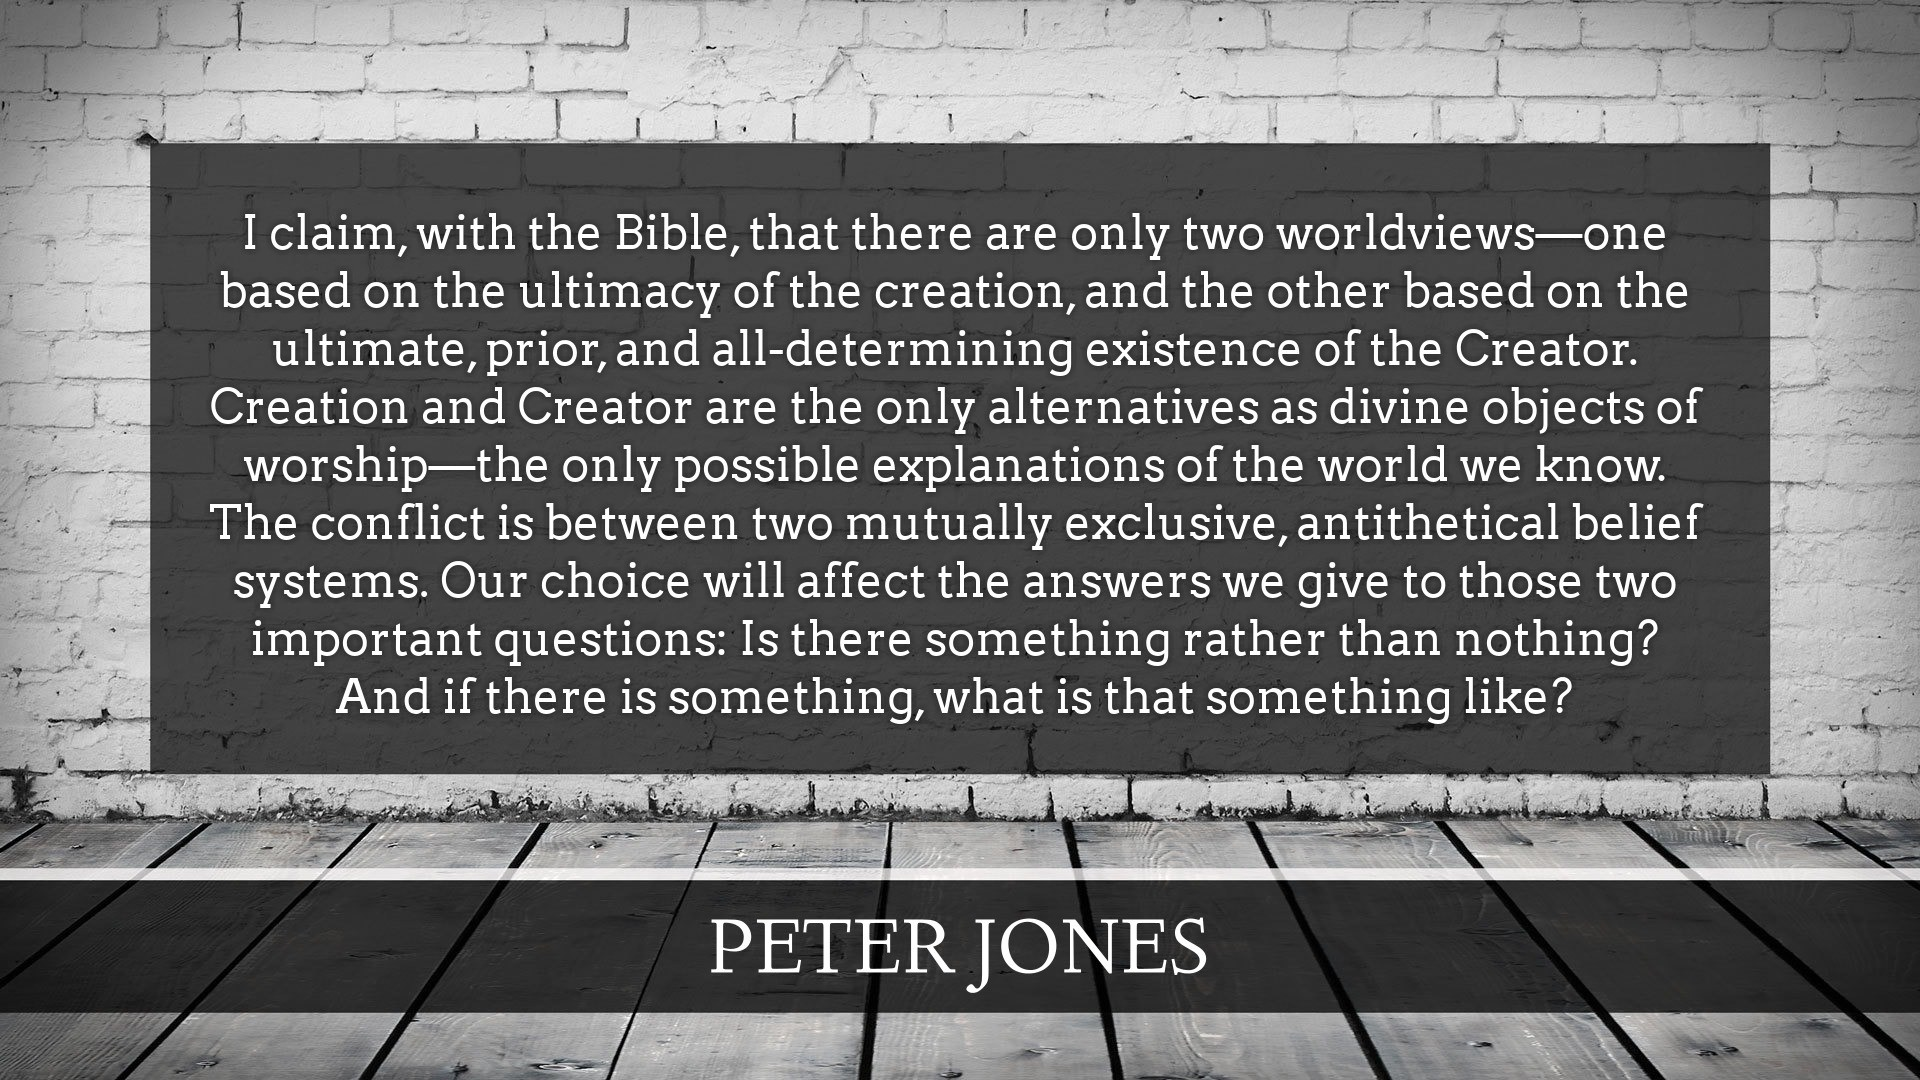 Peter Jones on Worldview